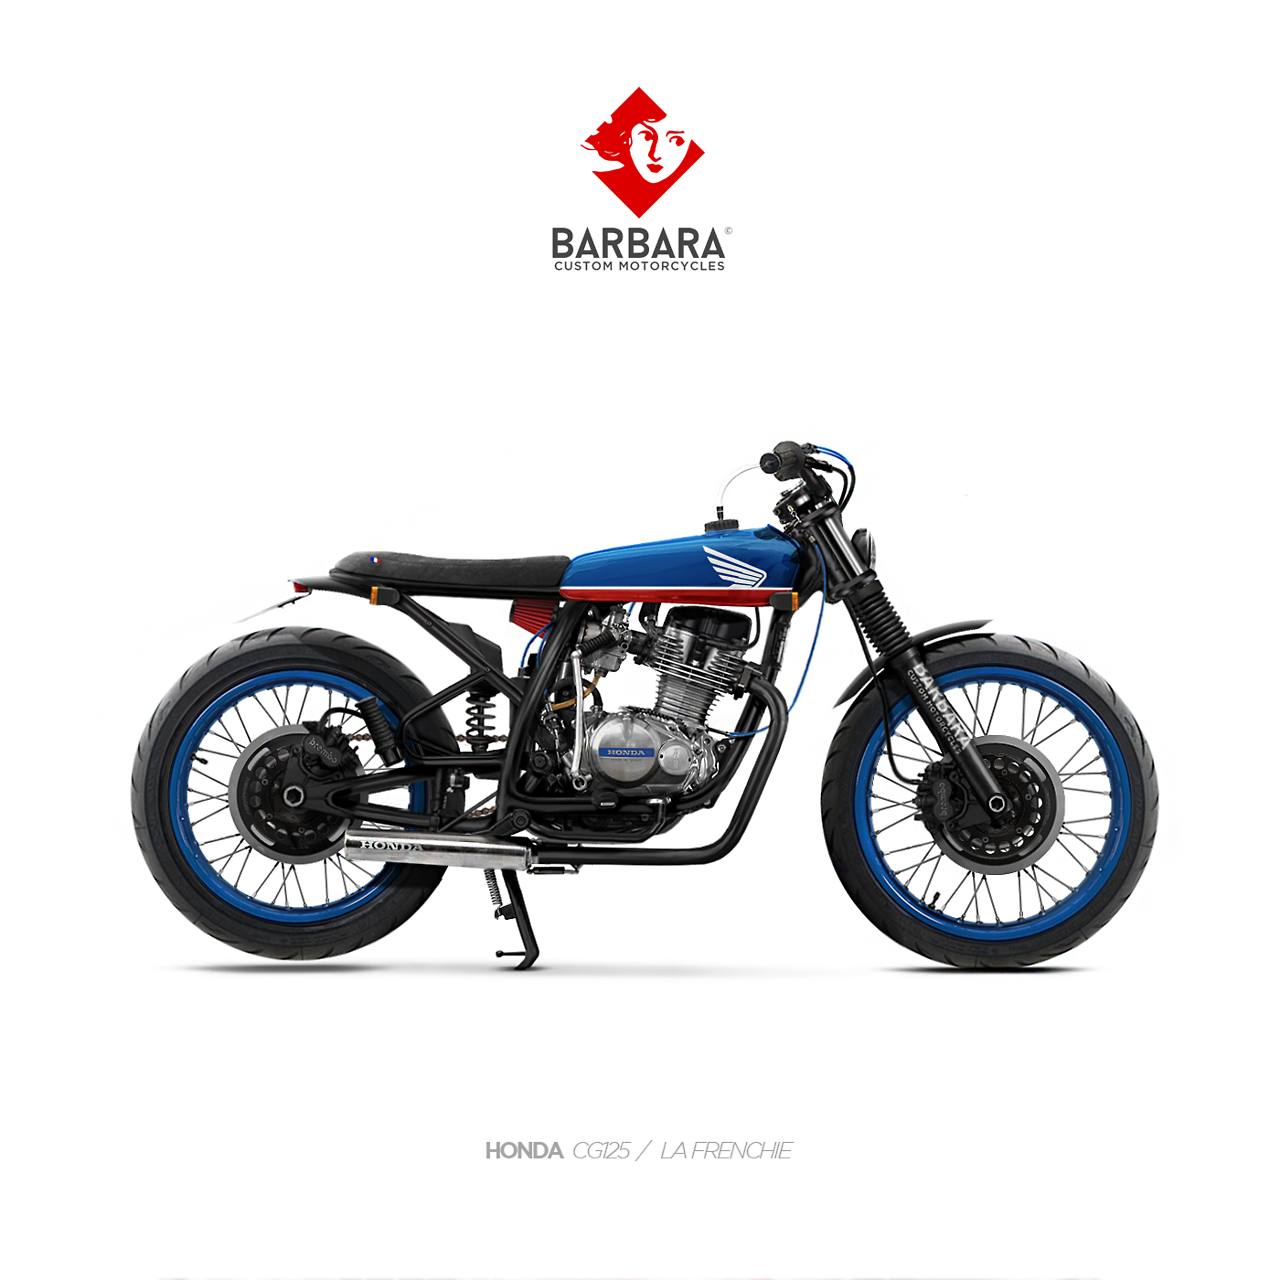 Barbara Motorcycles Photo With Images